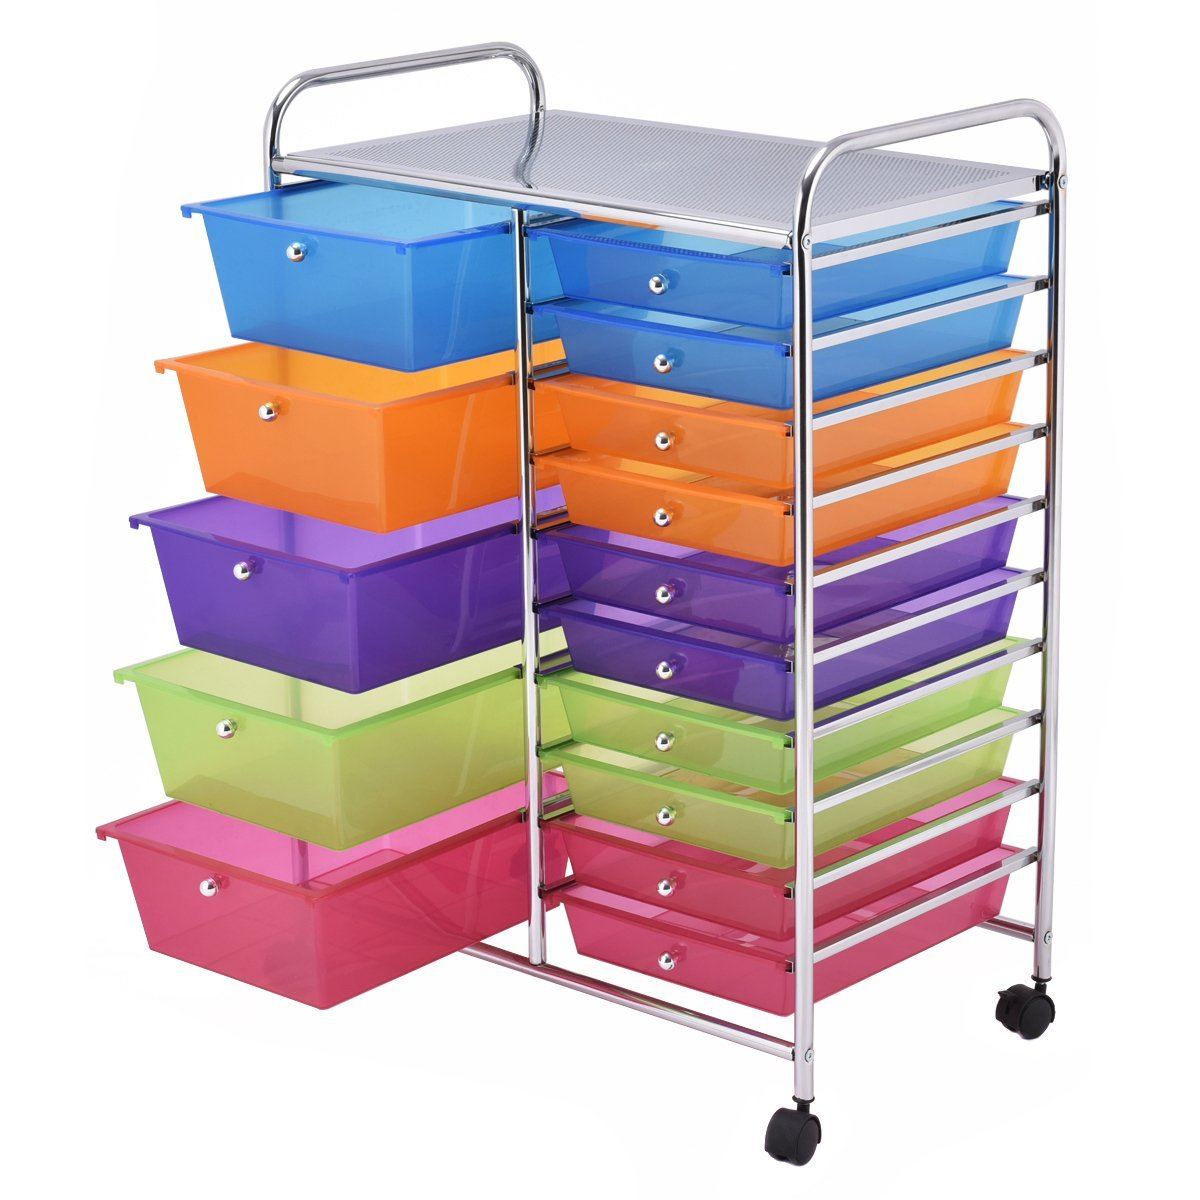 Rolling craft cart with drawers - New Rolling Storage Organization 15 Shelves Plastic Drawers Wheeled Craft Cart